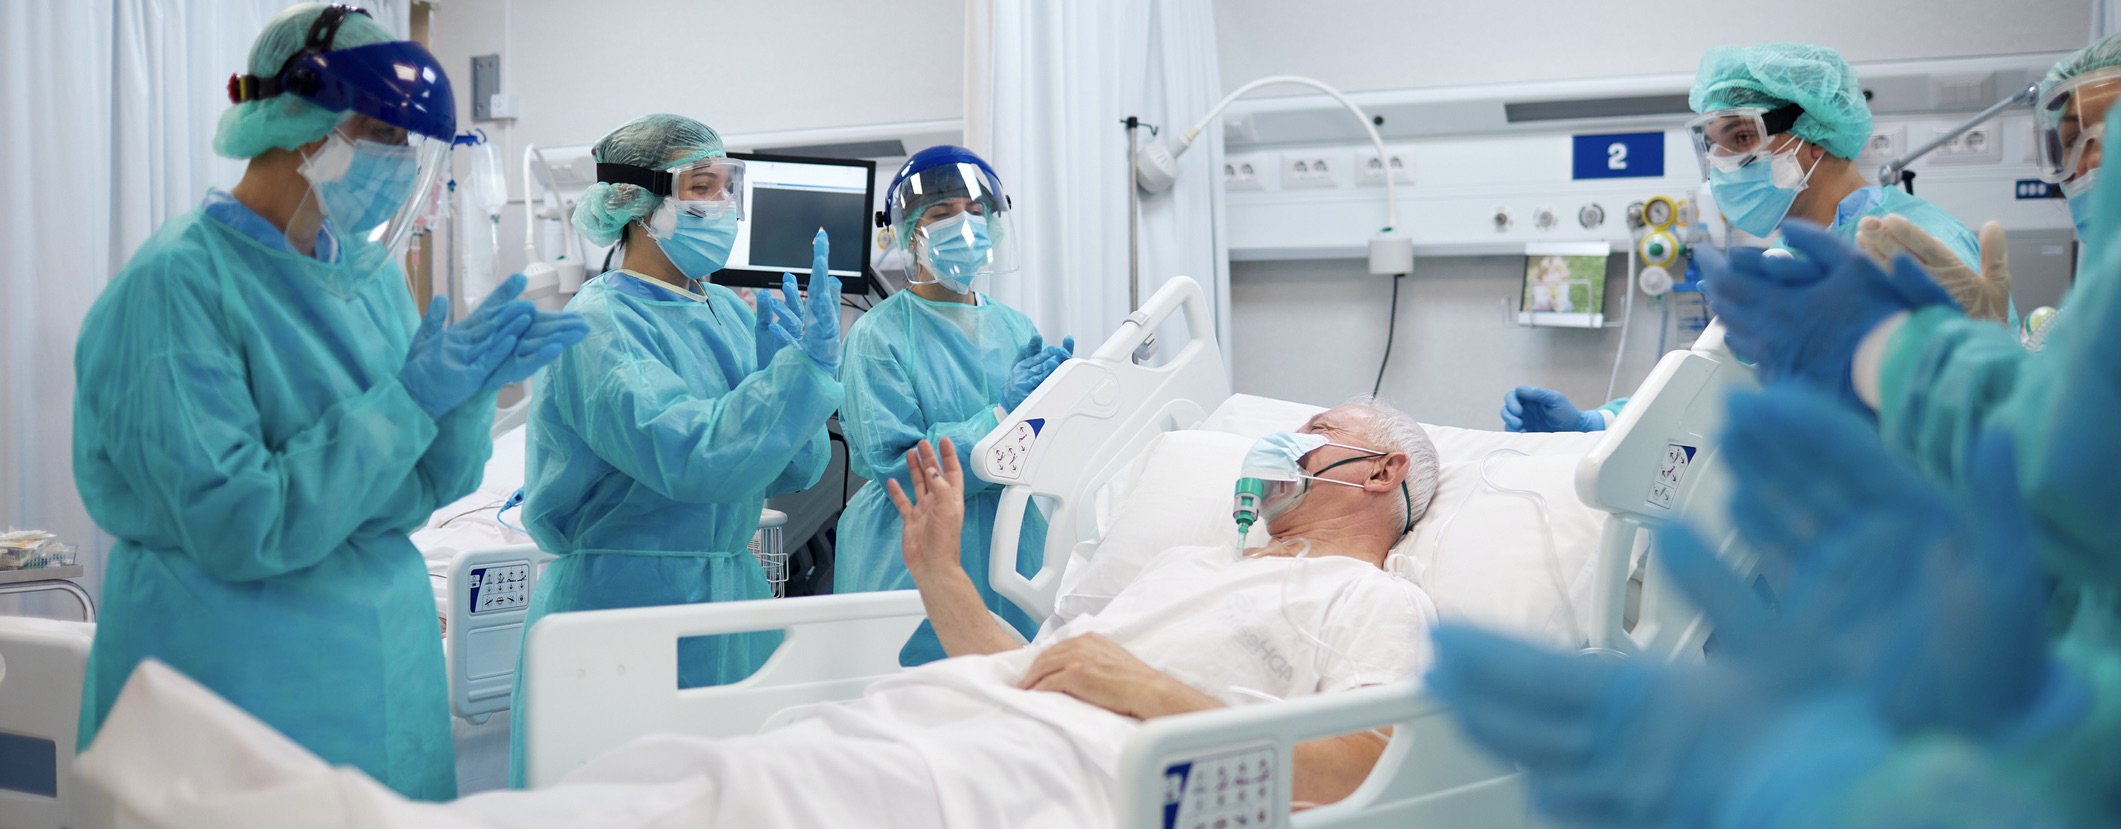 Healthcare professionals clapping for a recovered COVID patient